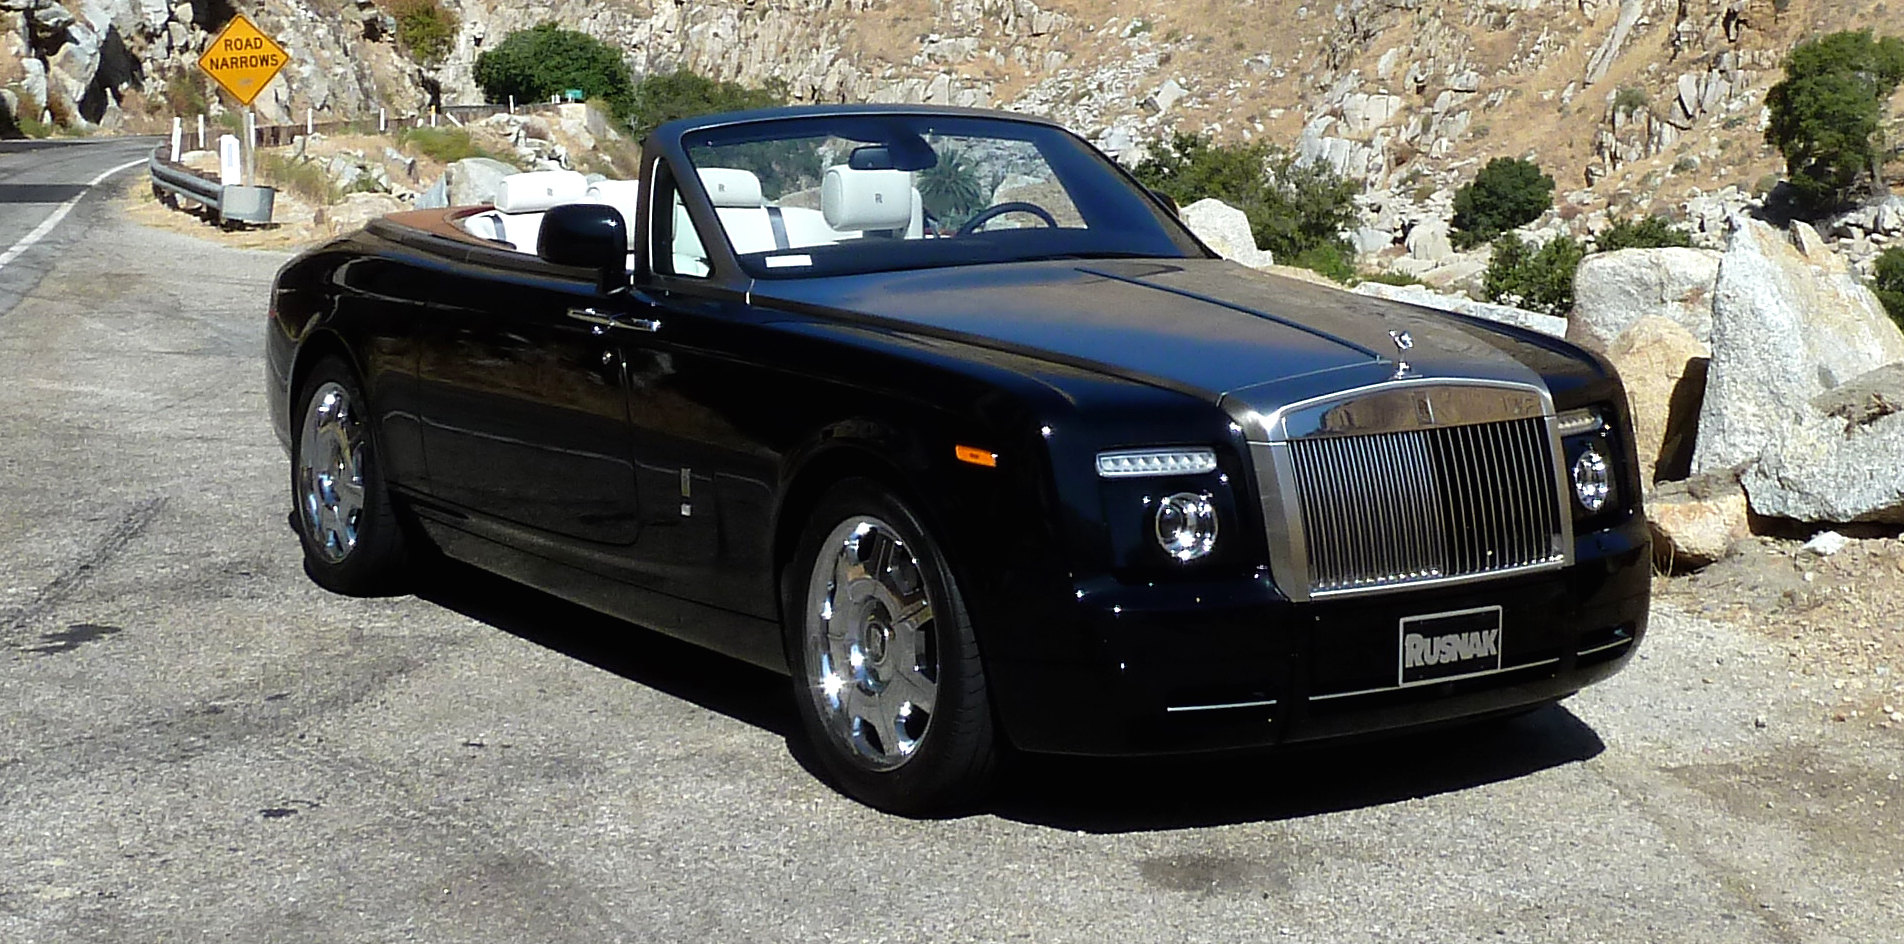 The History of Rolls-Royce in 10 Interesting Facts - Catawiki